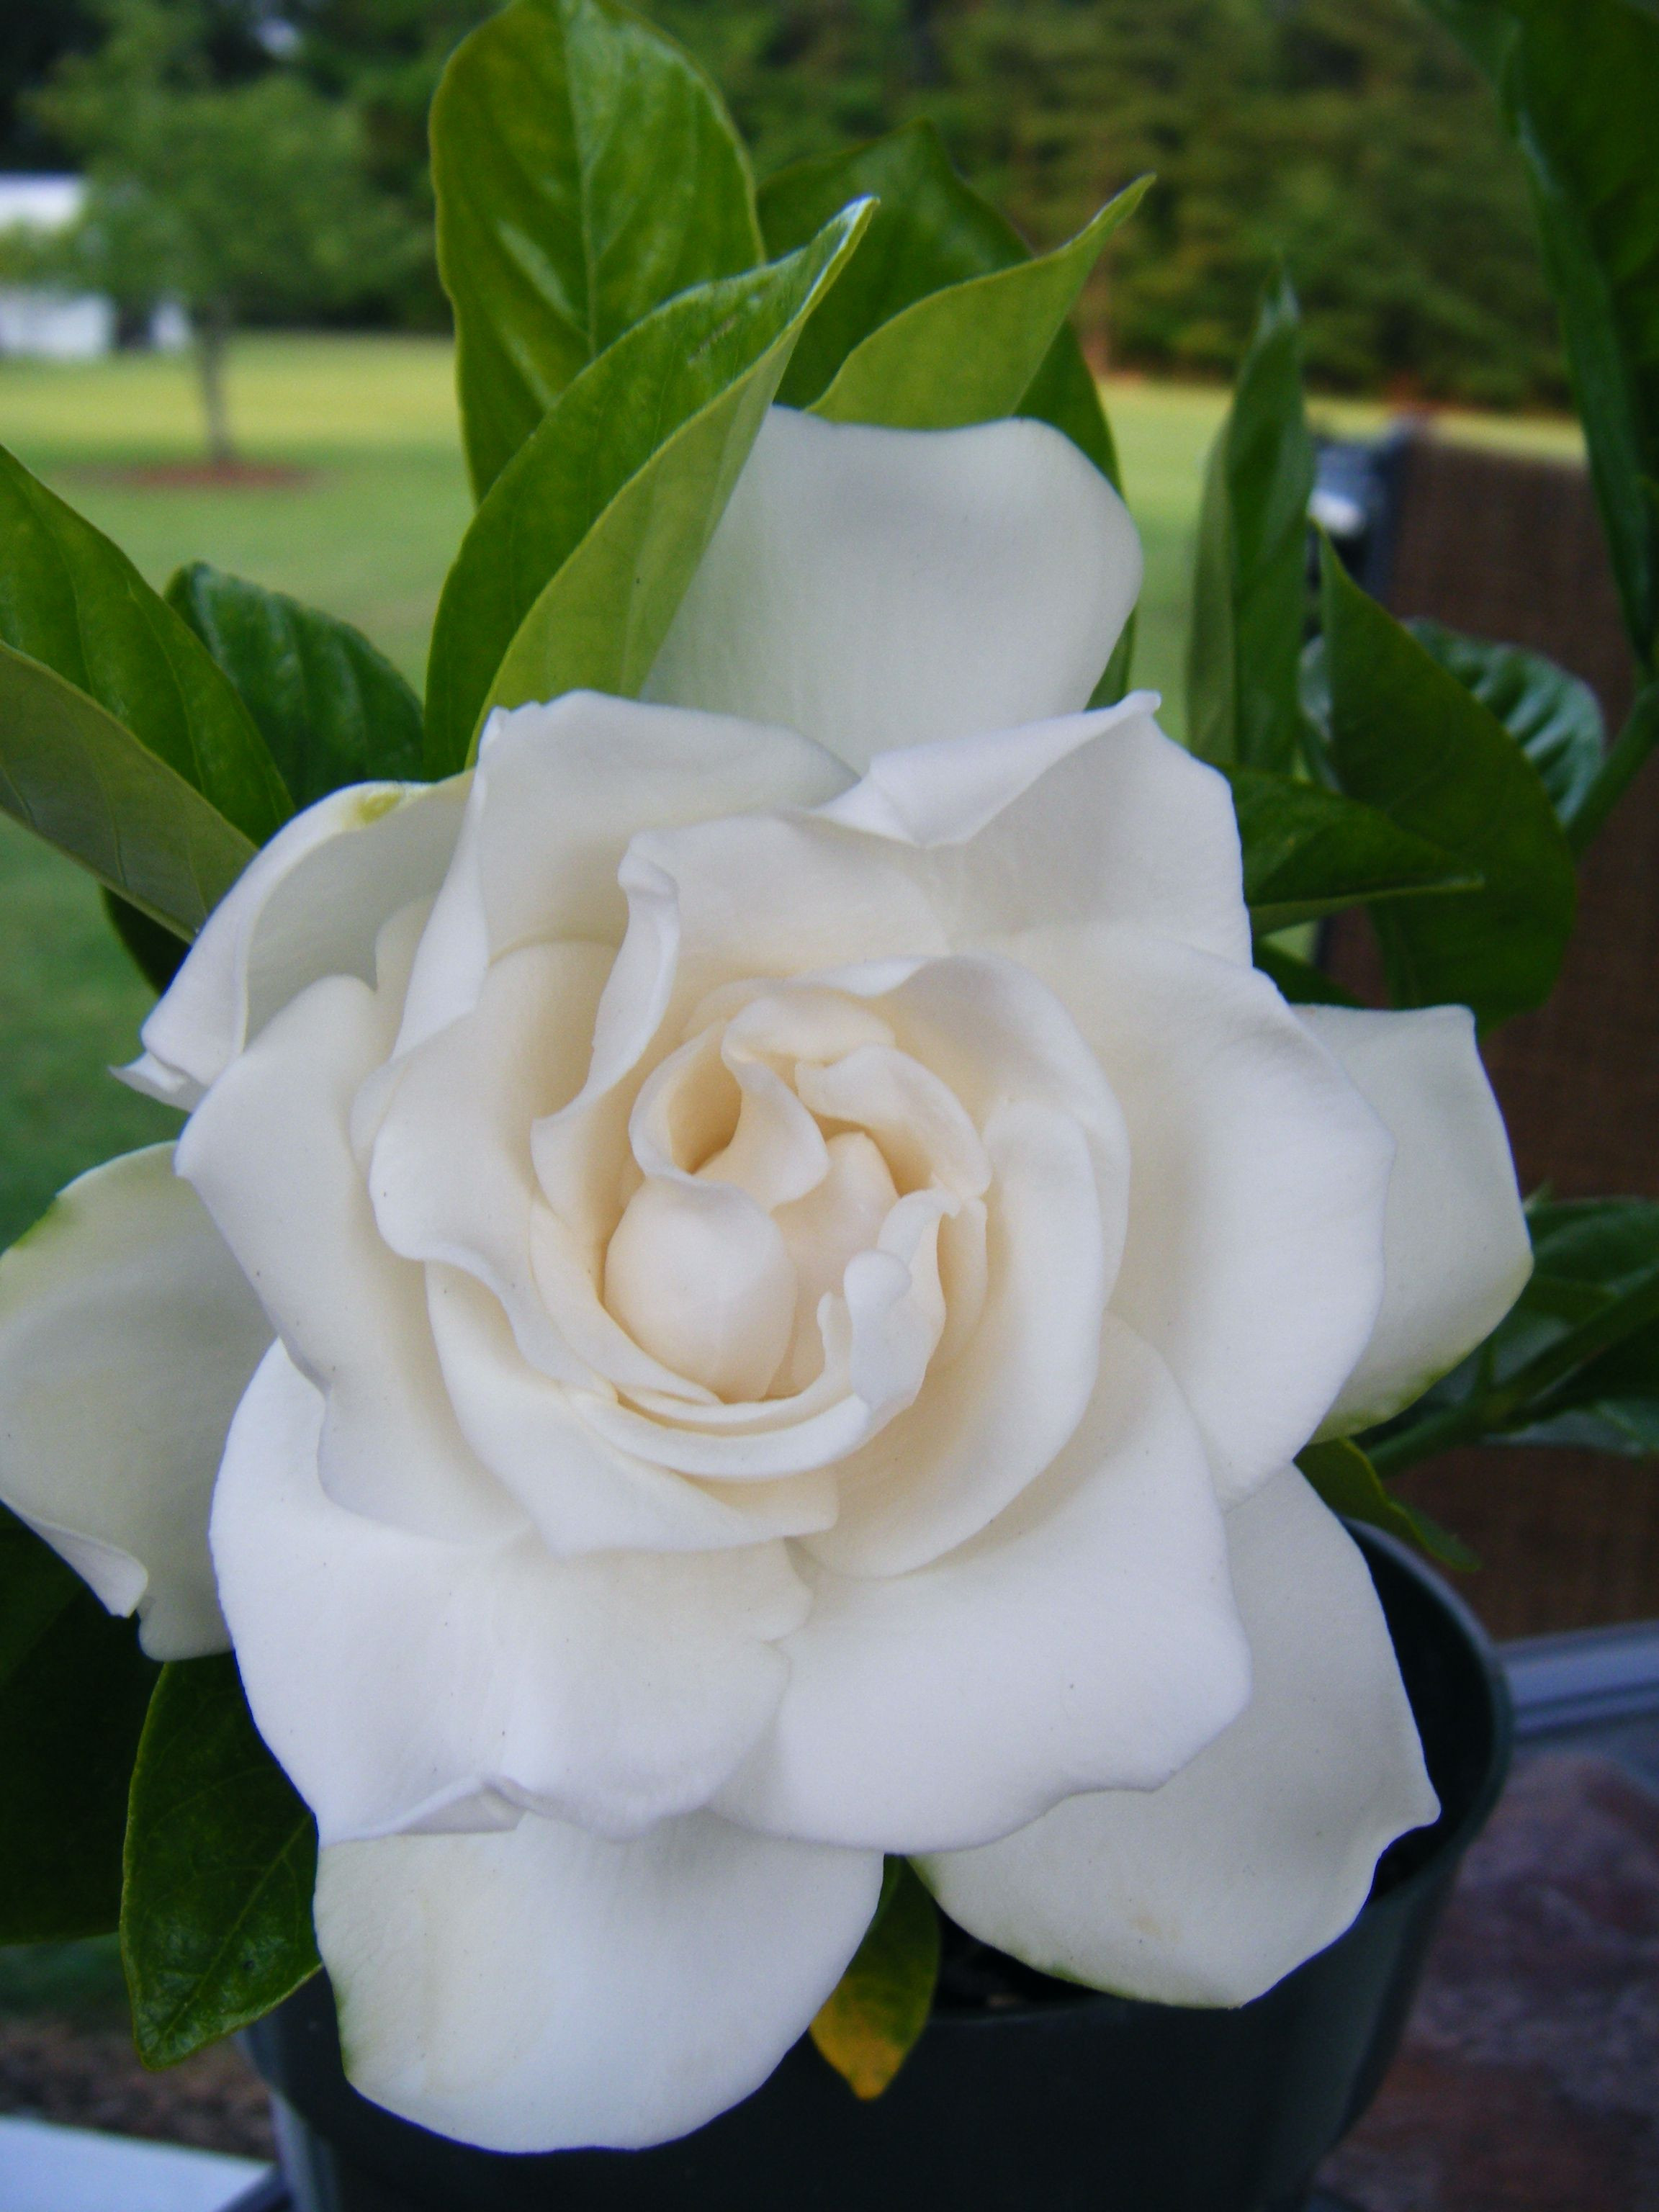 Gardenia I want a whole garden of them It is best to prune gardenia plants right after the blooms have faded in the summer Gardenias will set their